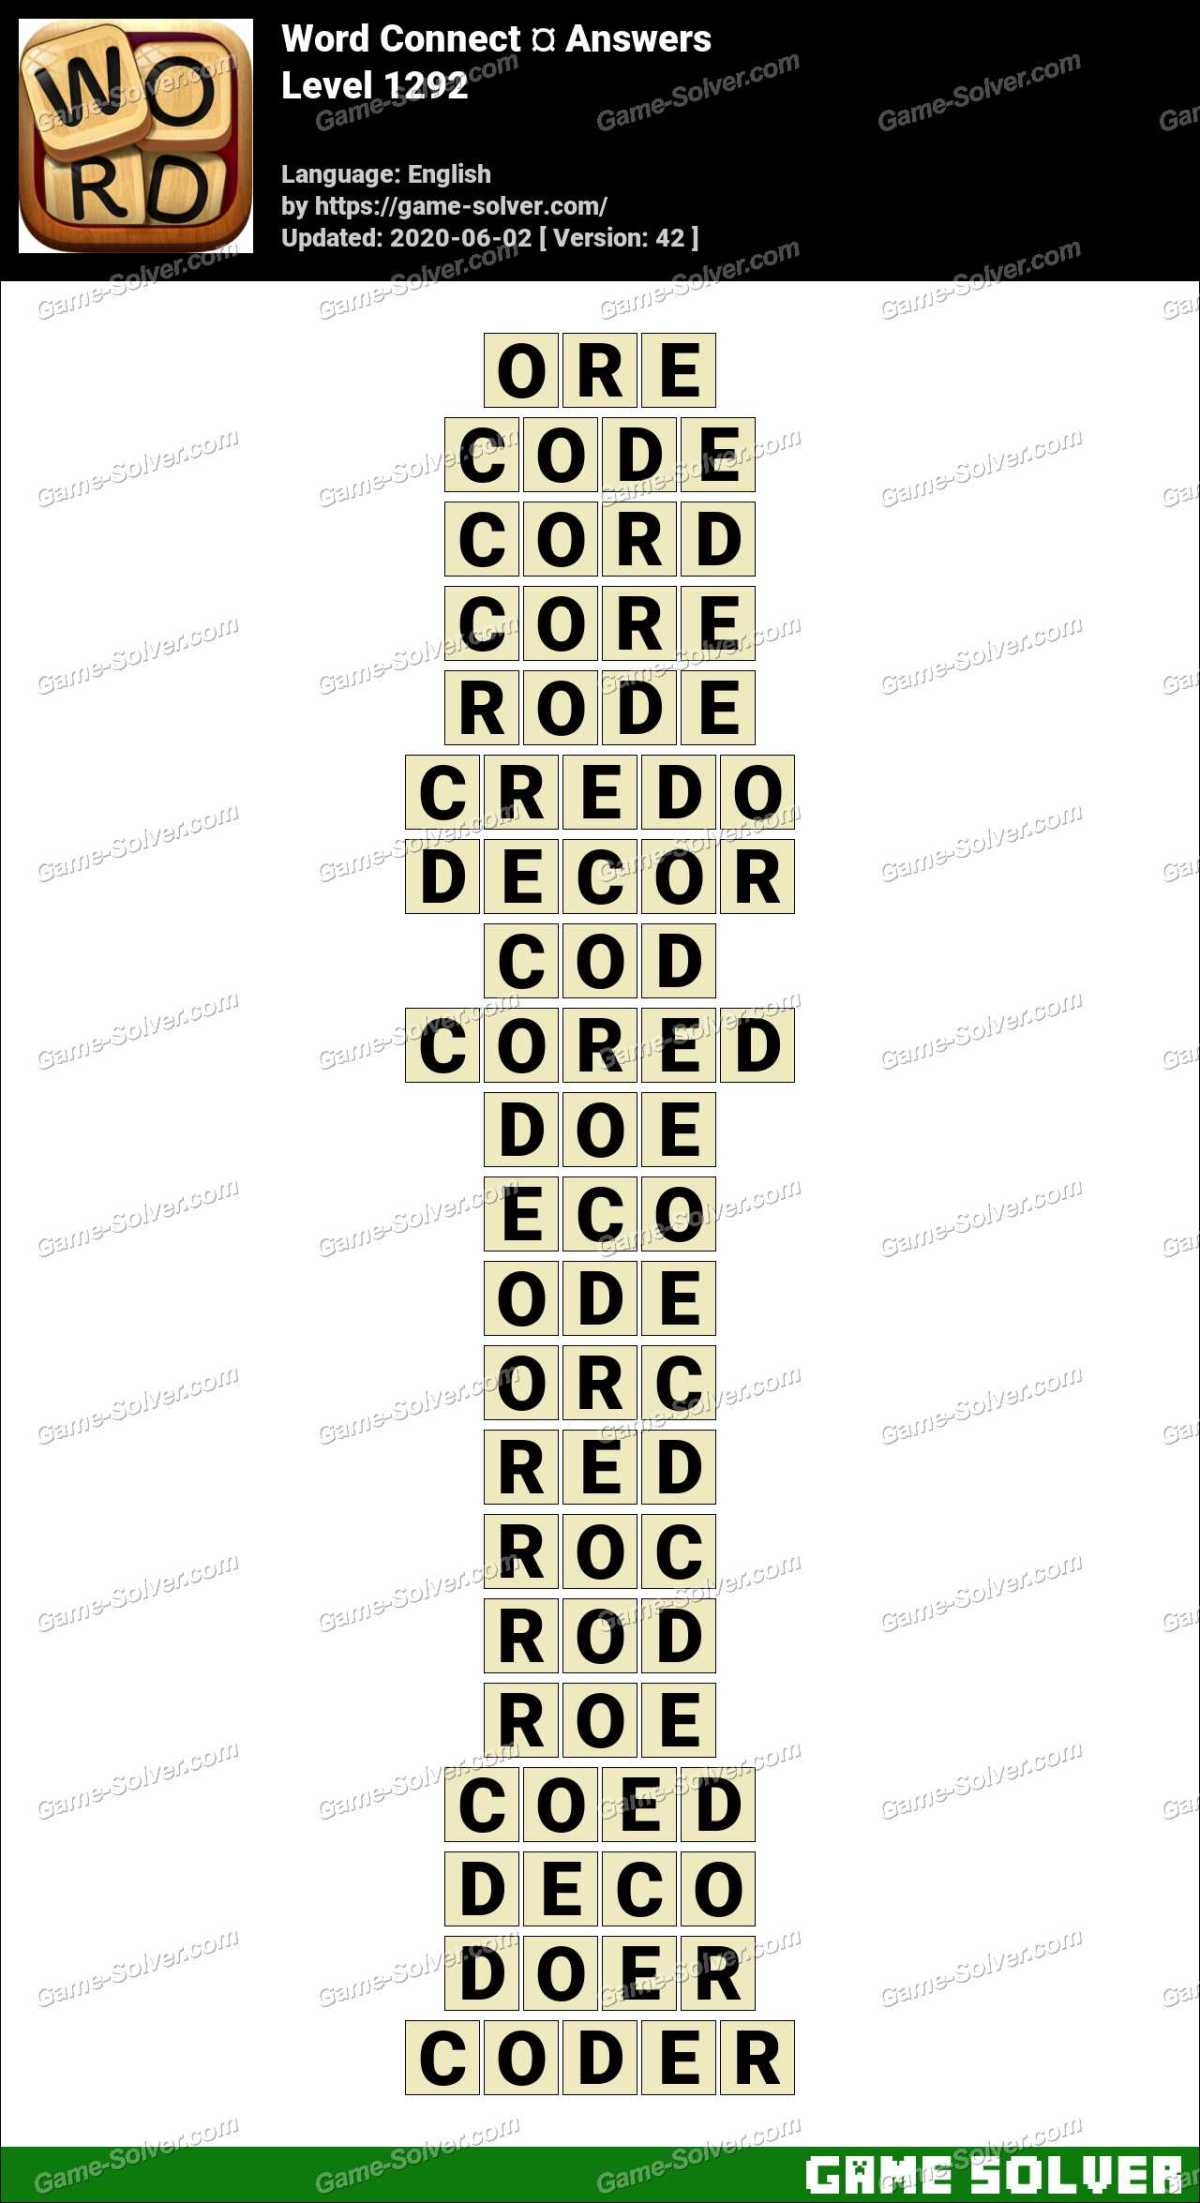 Word Connect Level 1292 Answers